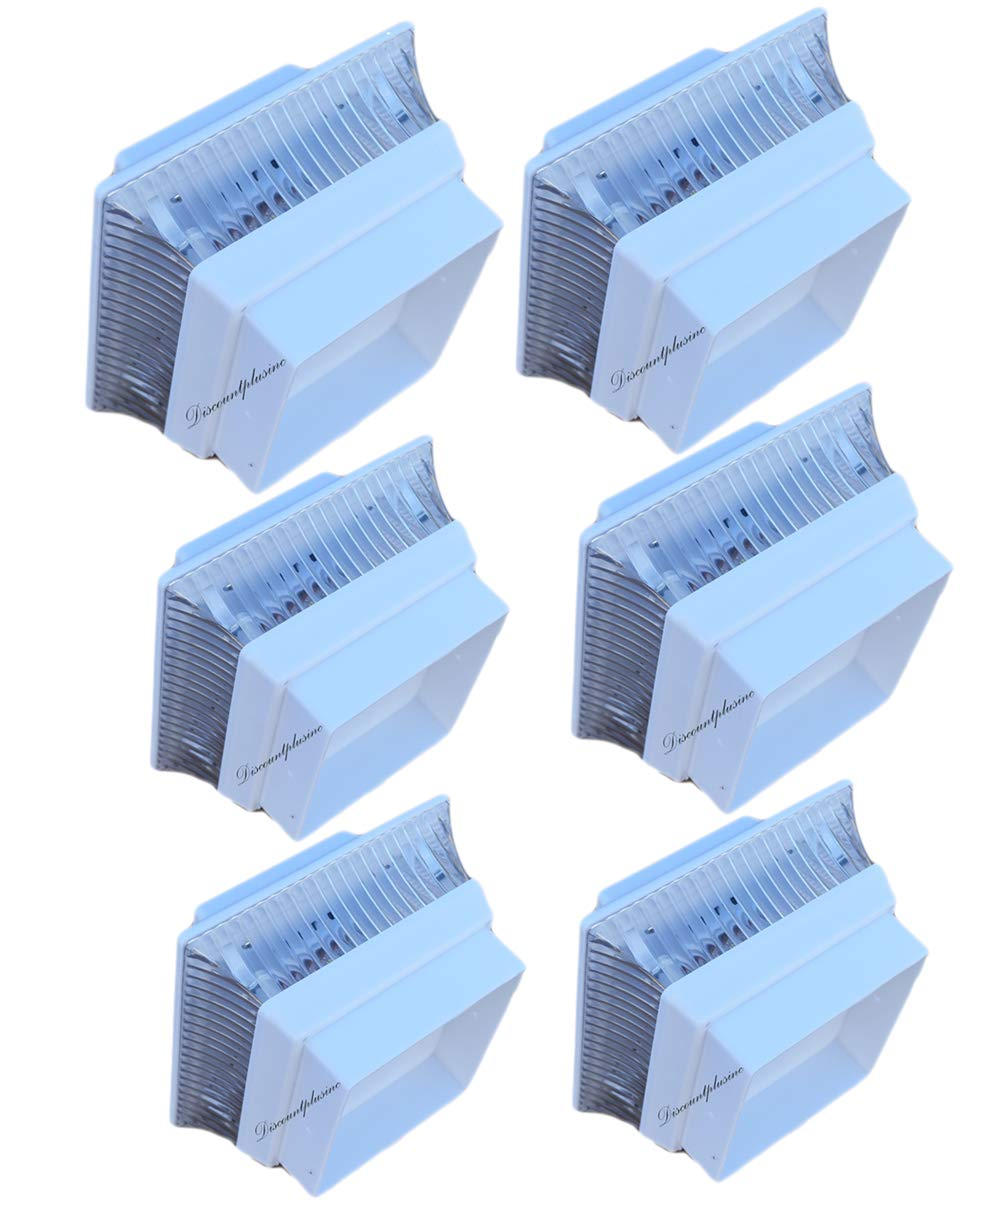 6 PACK BRIGHT WHITE (2) SMD LED's Solar Powered Post Cap Fence Deck Lights 4x4 Wood Post (NOT FOR PVC)